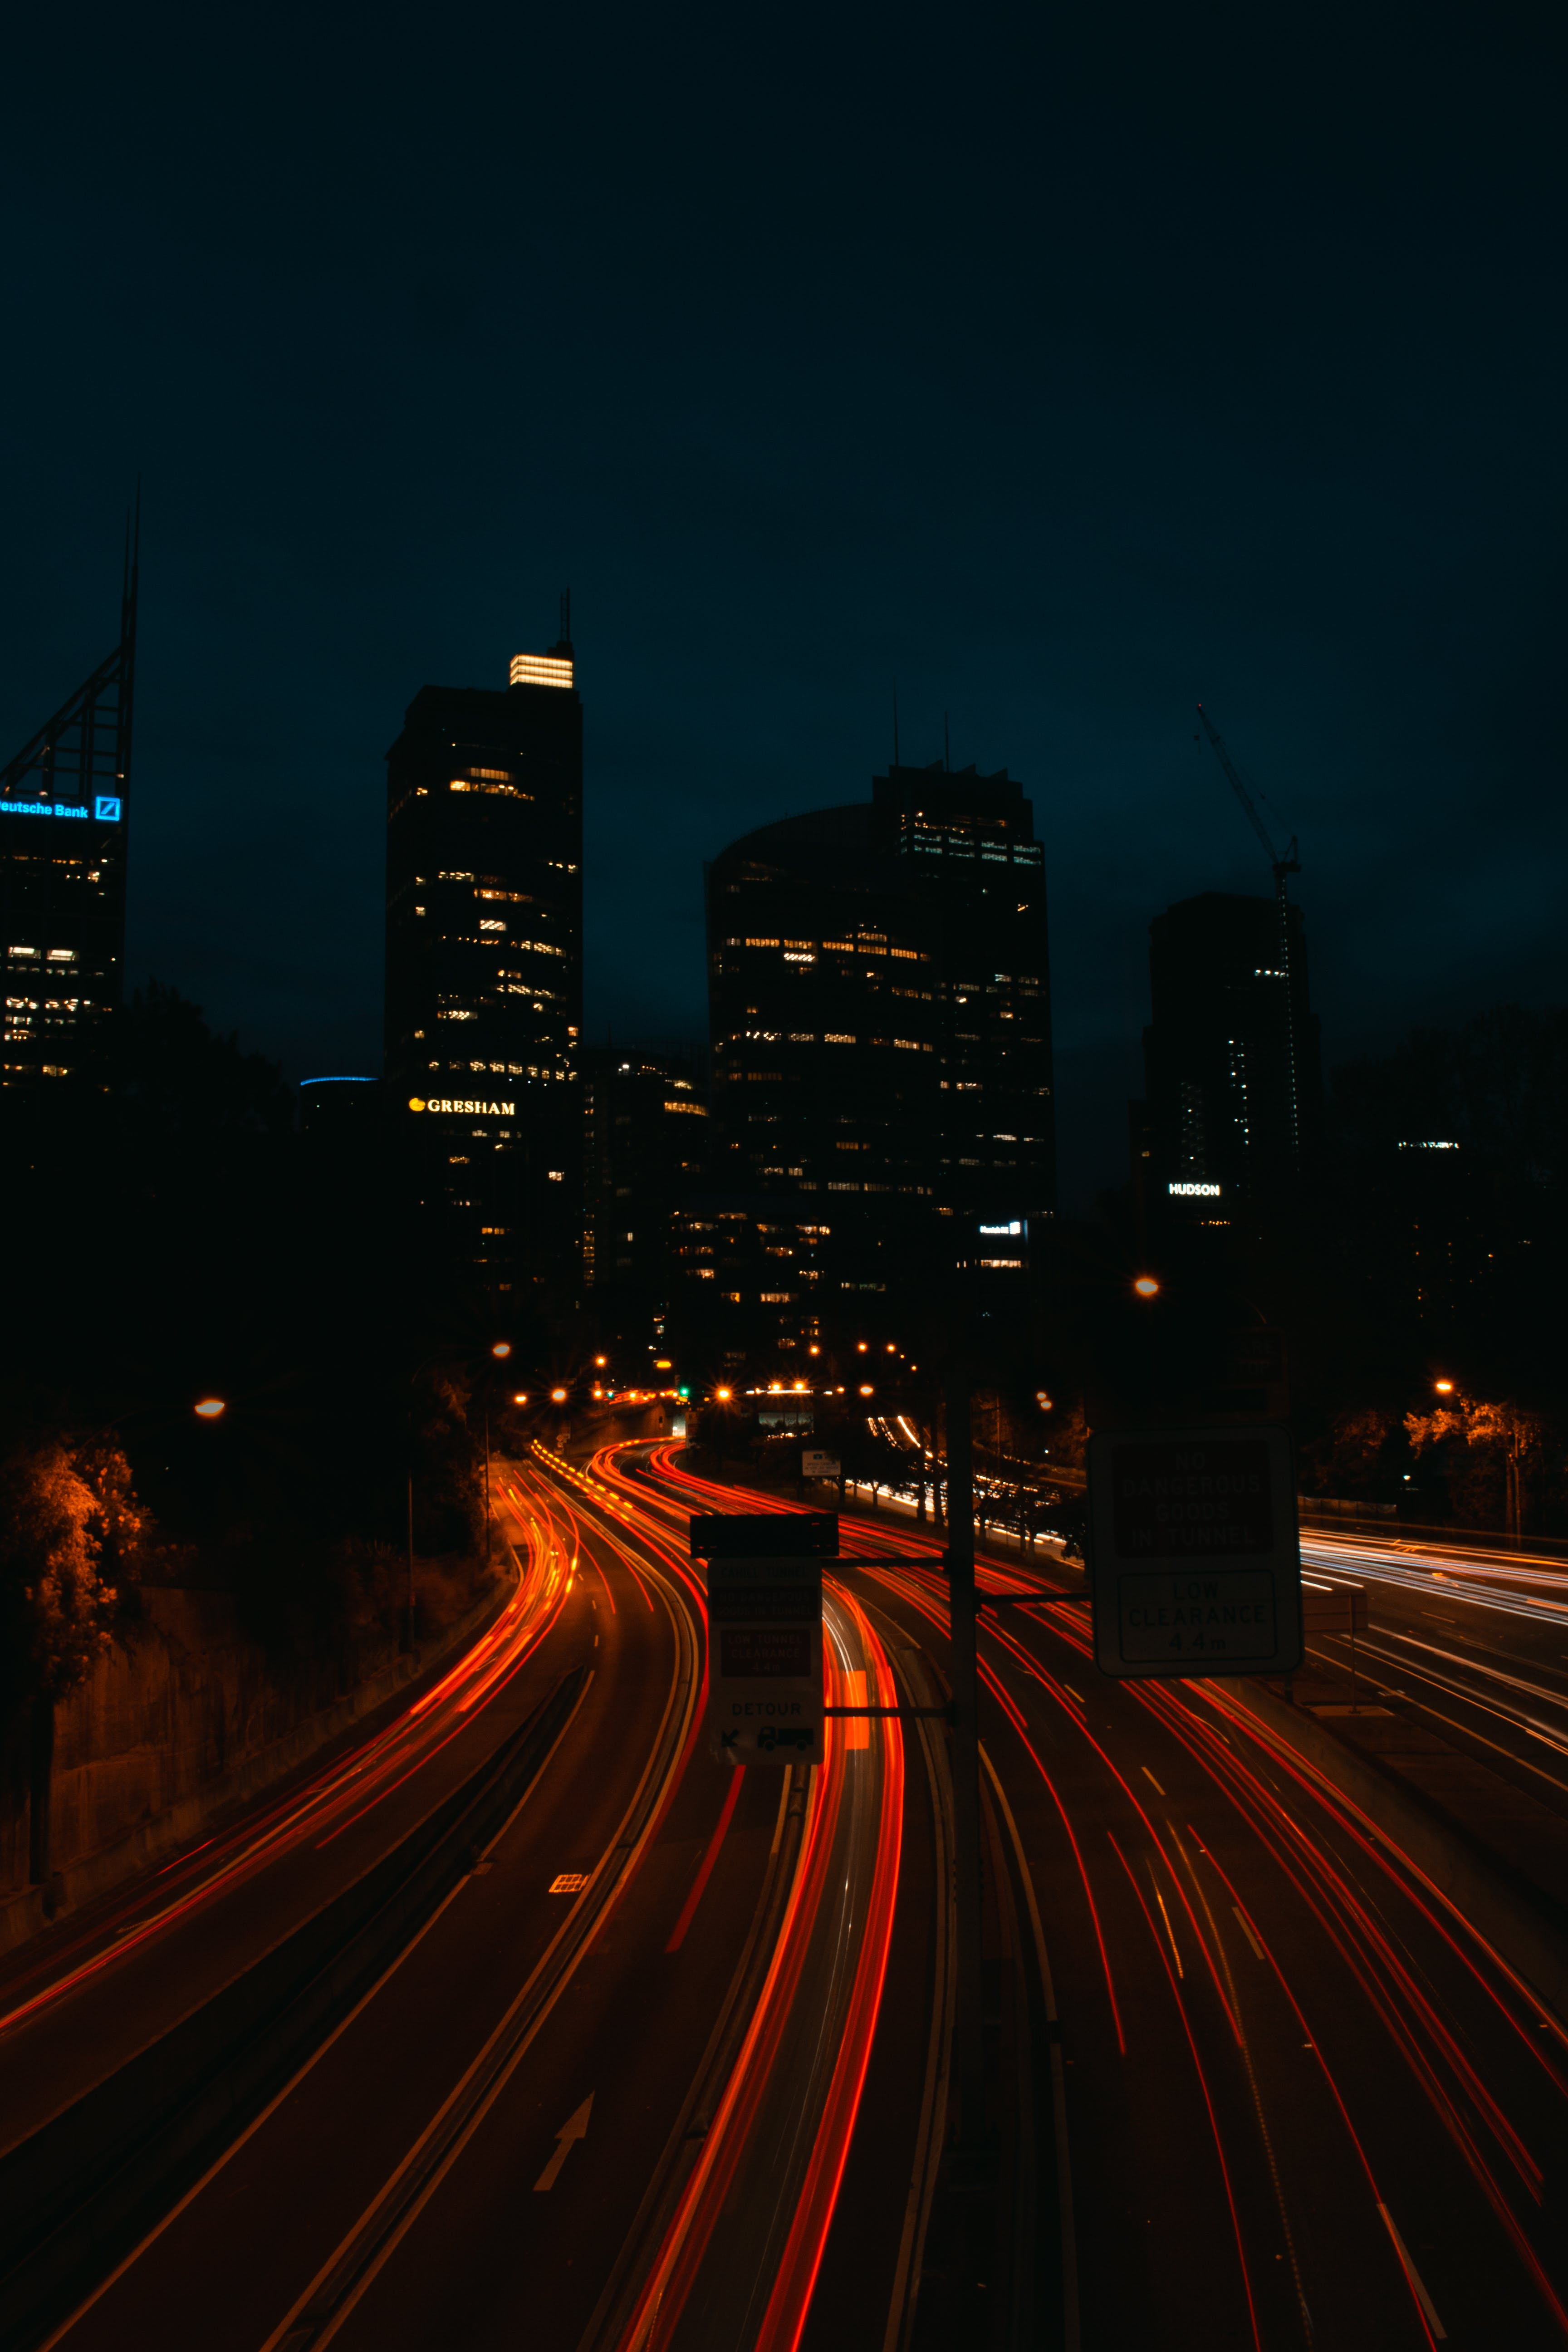 Time Lapse Photo of Lighted Highway at Night With Buildings in Background